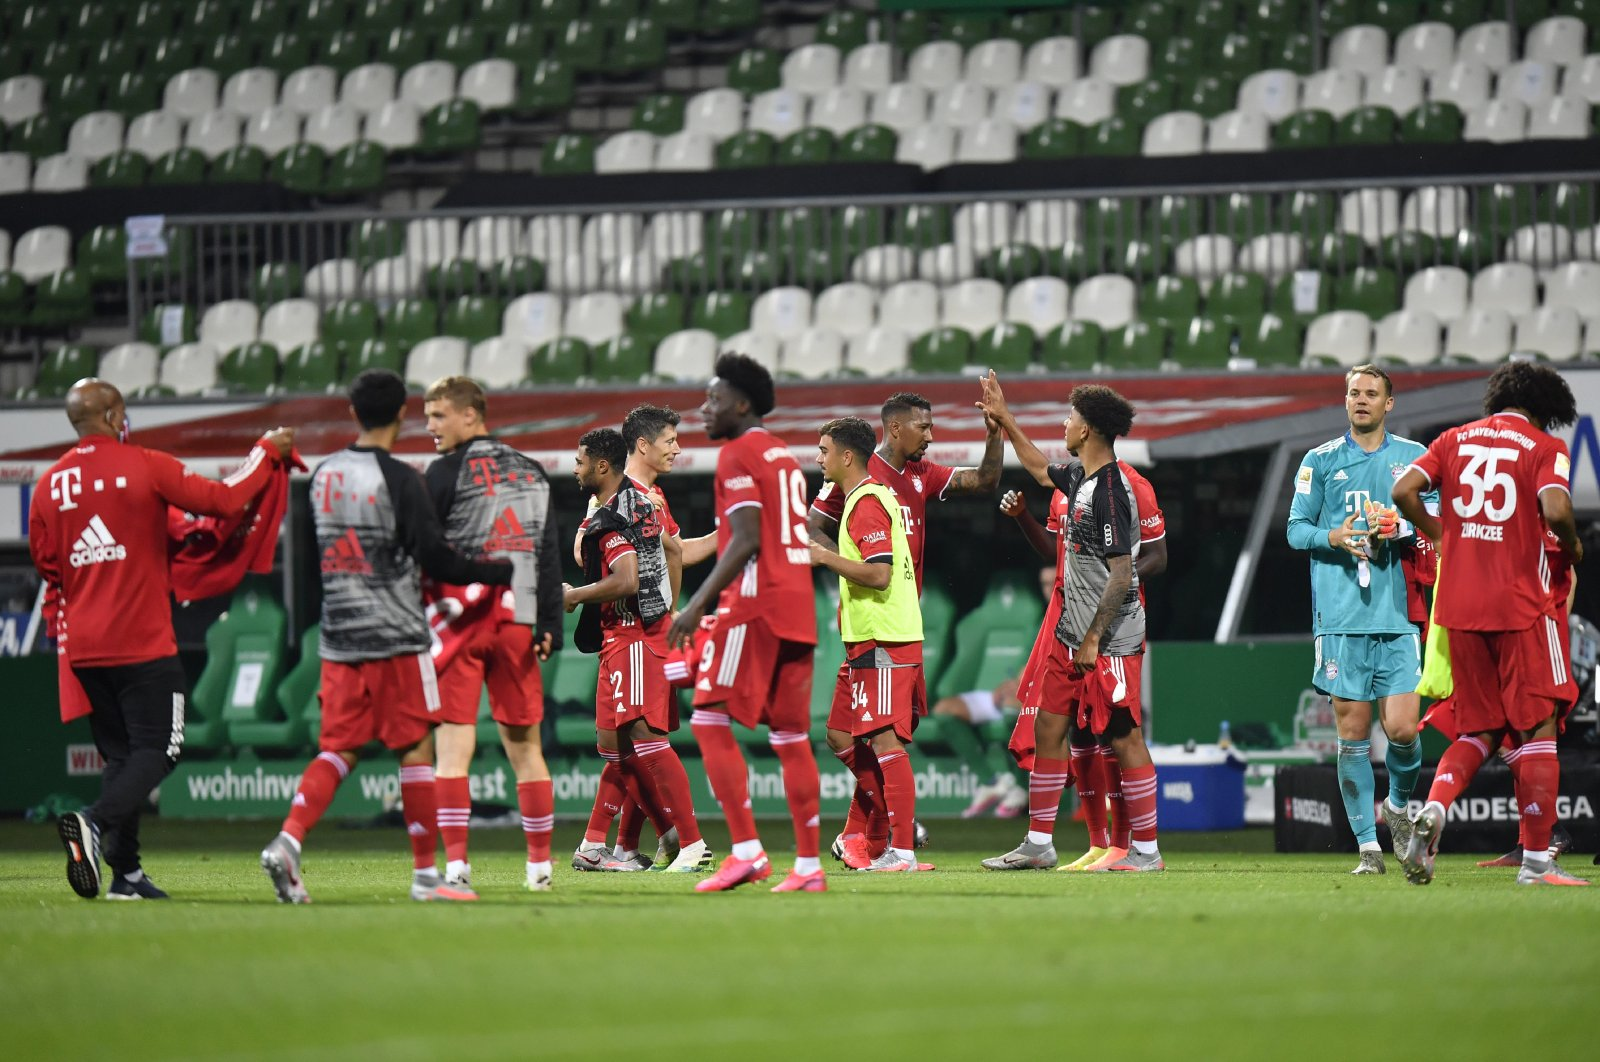 Bayern Munich's players celebrate end of the German Bundesliga football match between Werder Bremen and Bayern Munich in Bremen, Germany, Tuesday, June 16, 2020. (AP Photo)